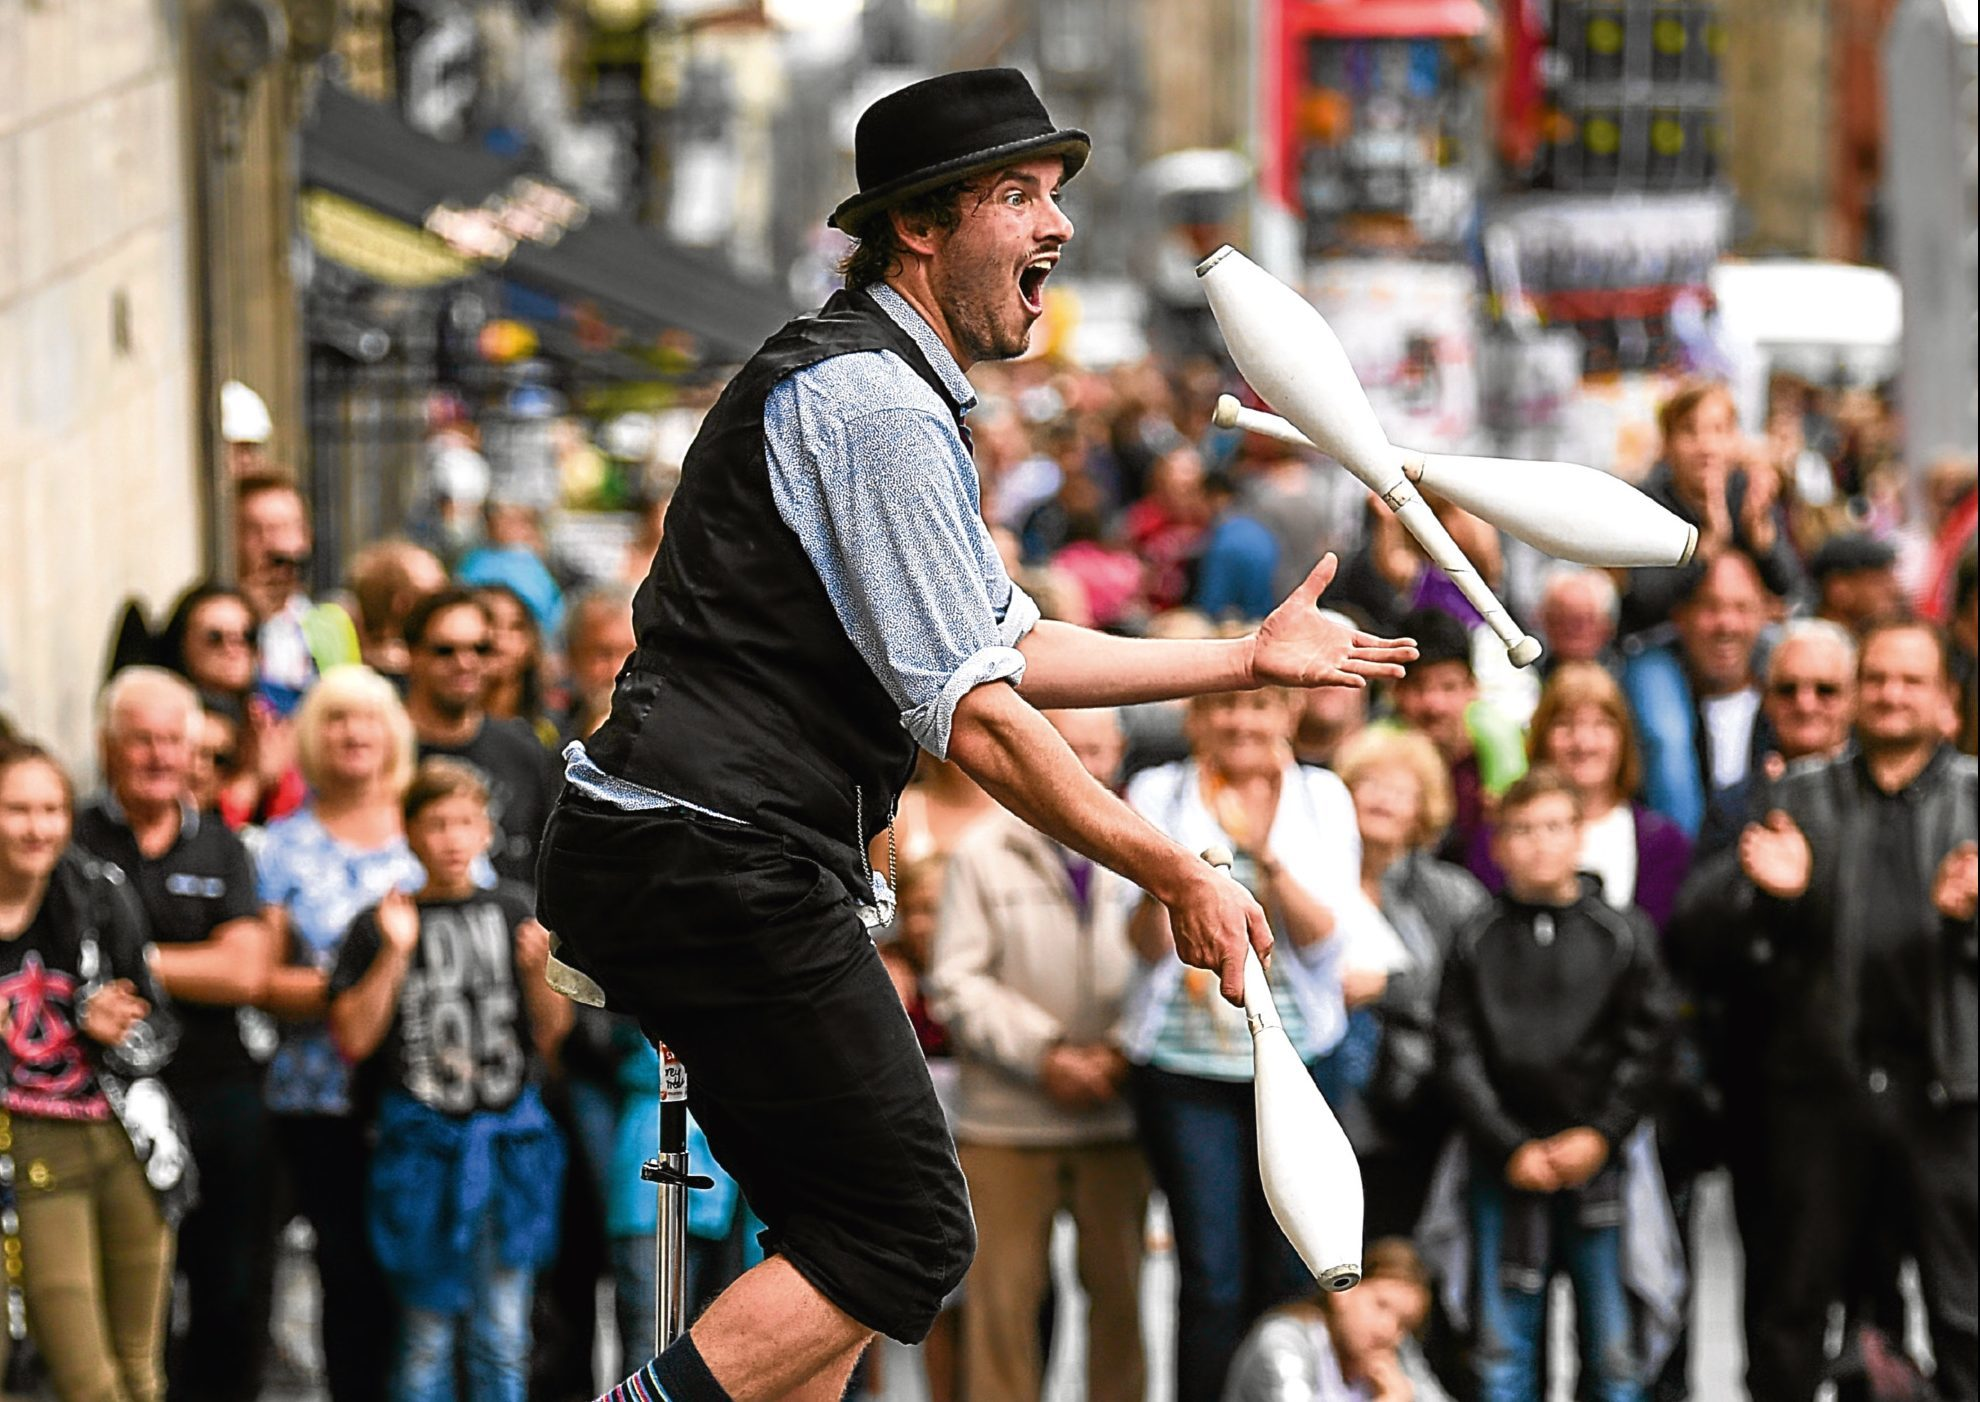 The Edinburgh Fringe Festival has returned.